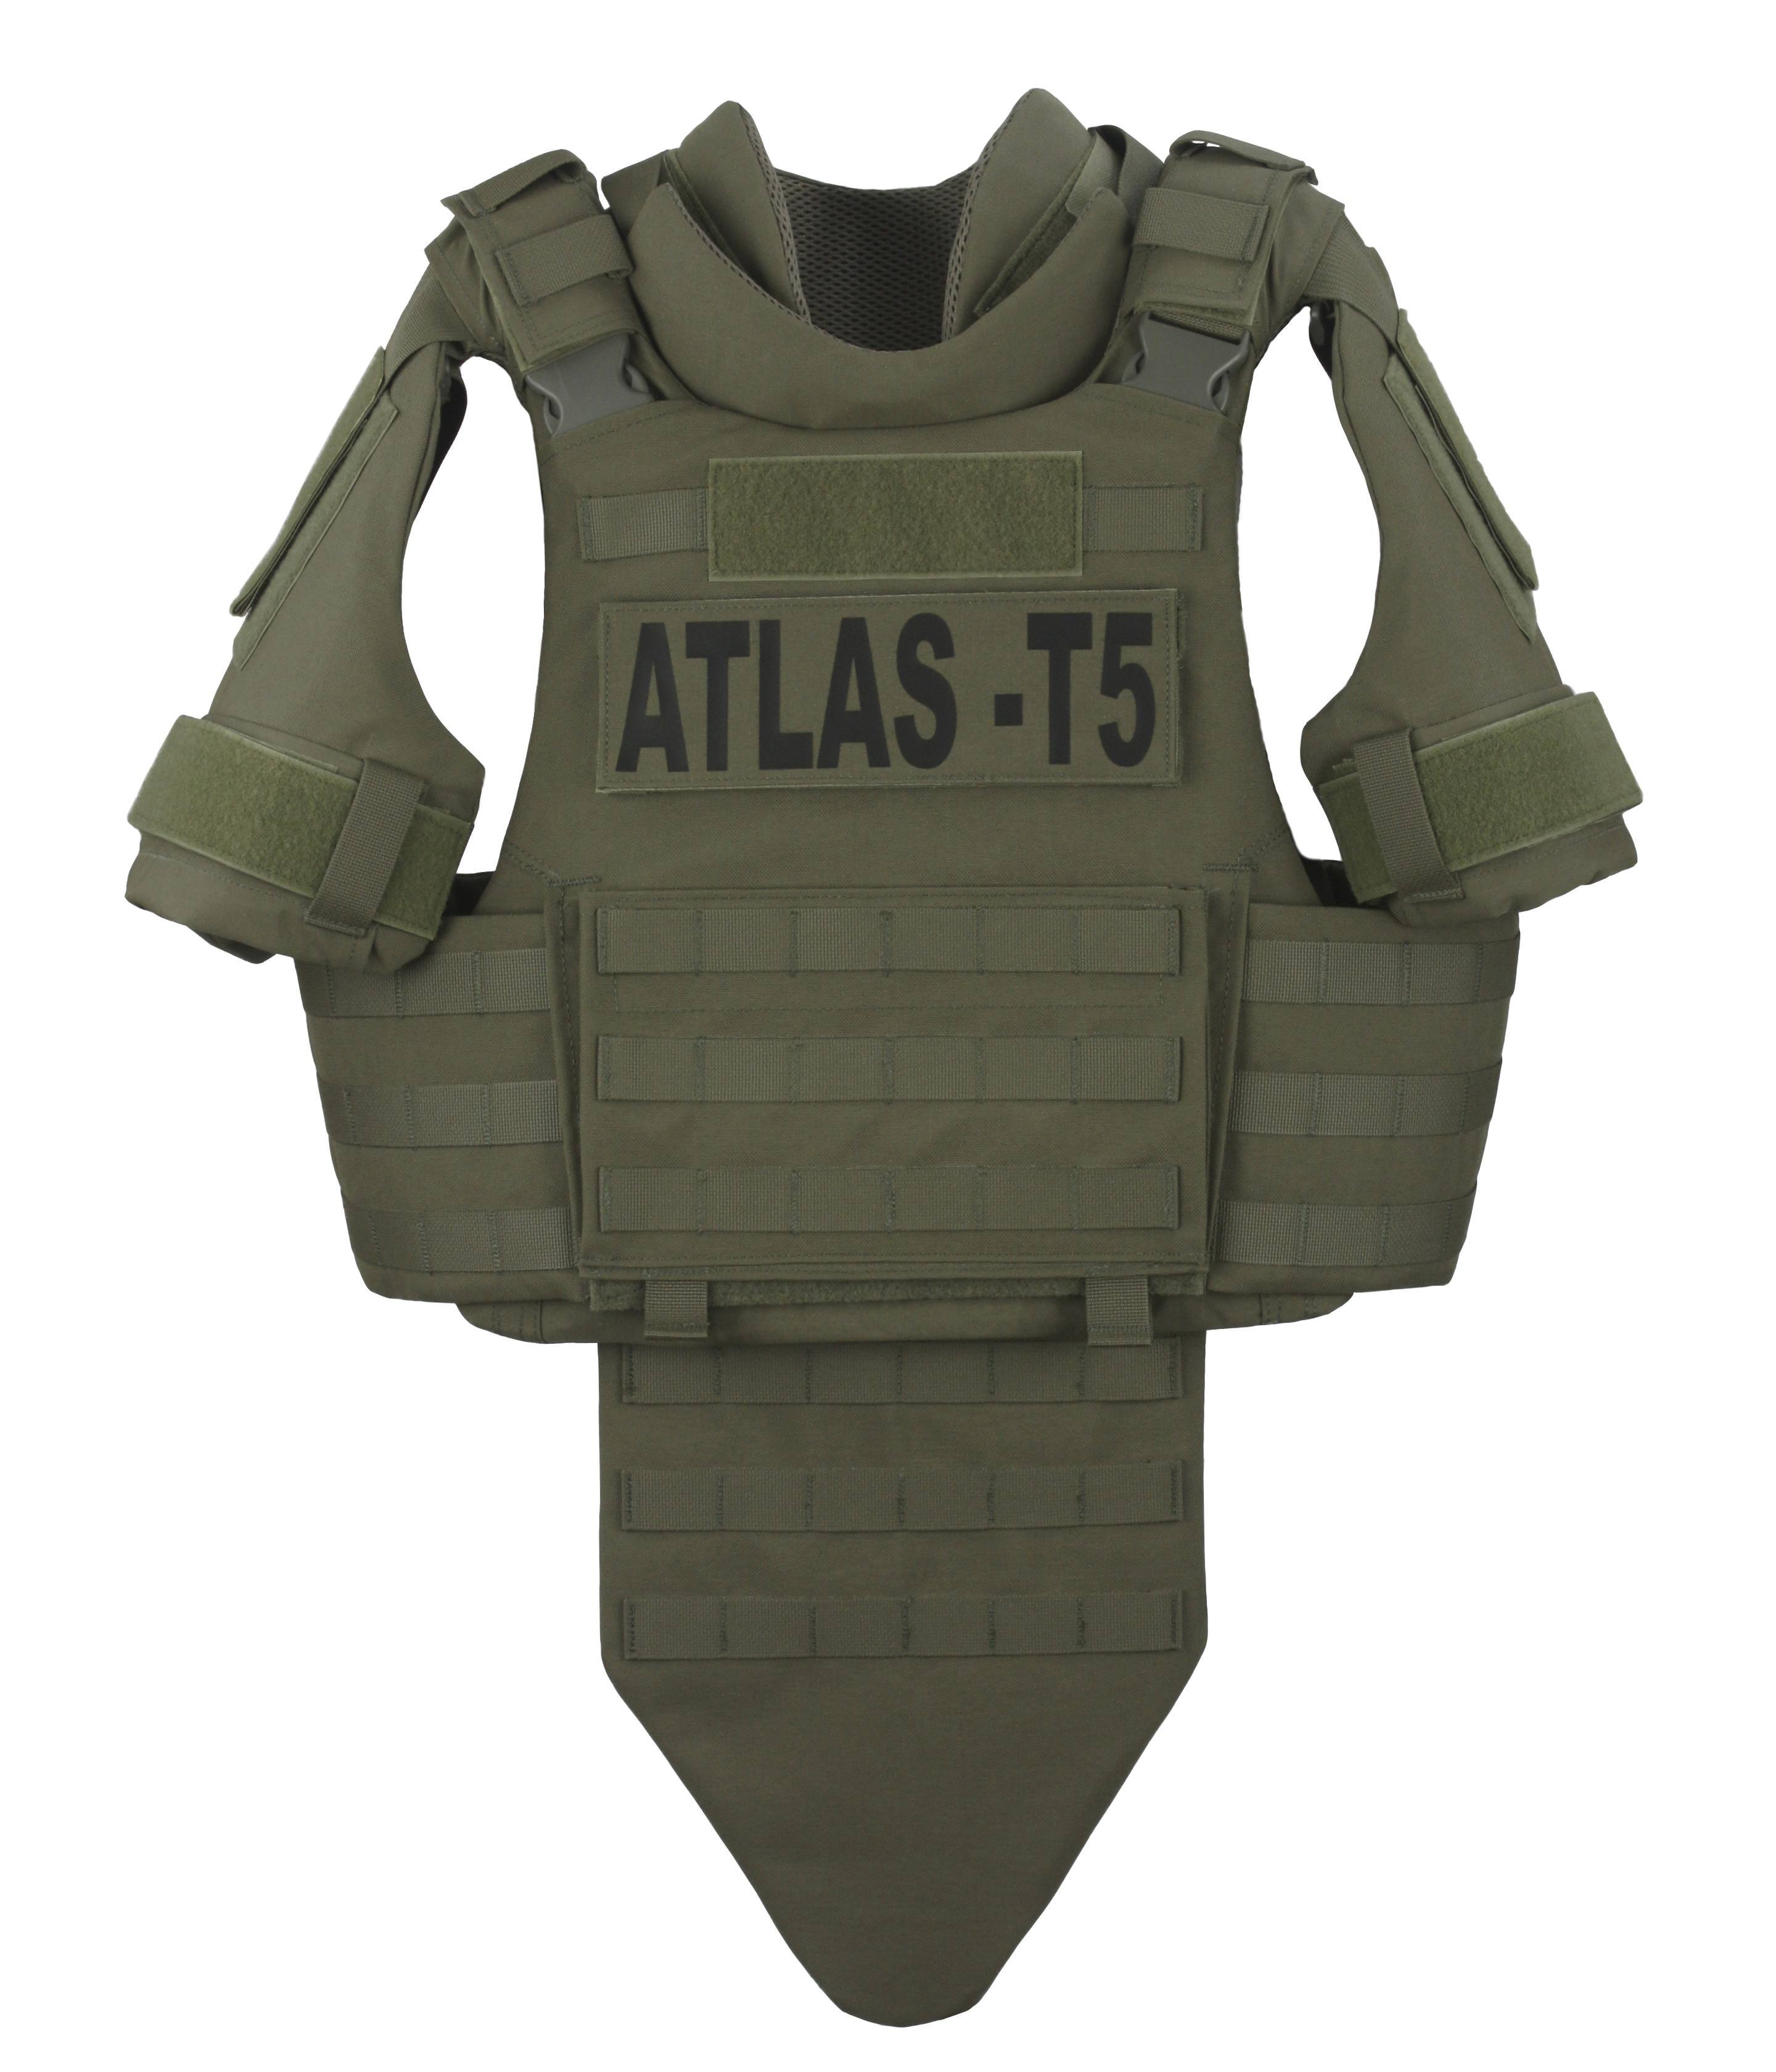 GH-AT5-VEST-LX3A Atlas T5 Ballistic Panels - LiteX IIIA